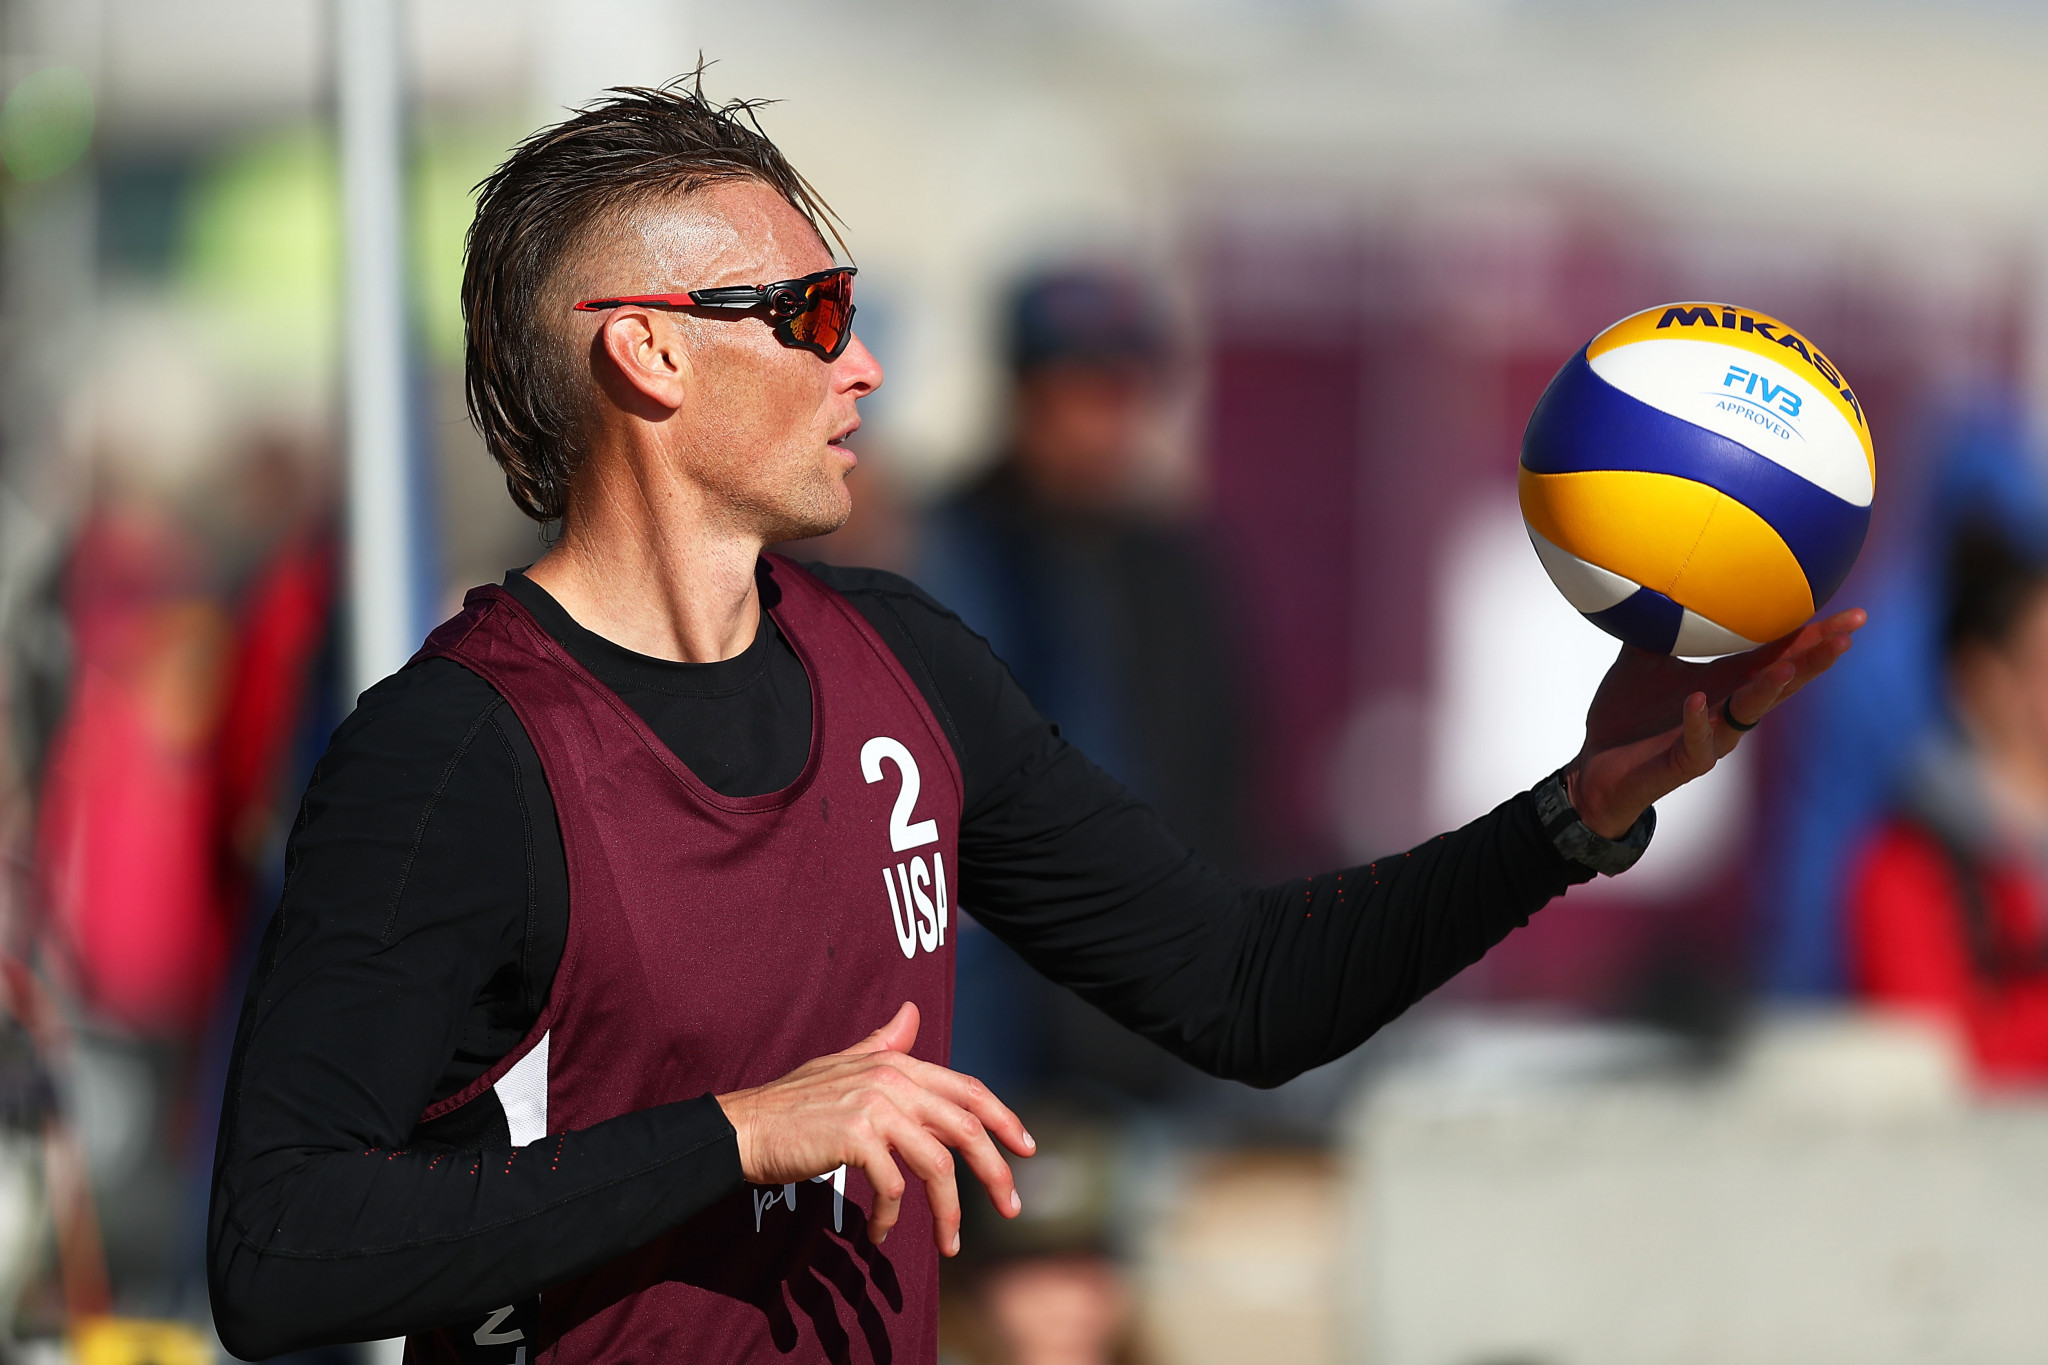 United States select 69-member team for ANOC World Beach Games